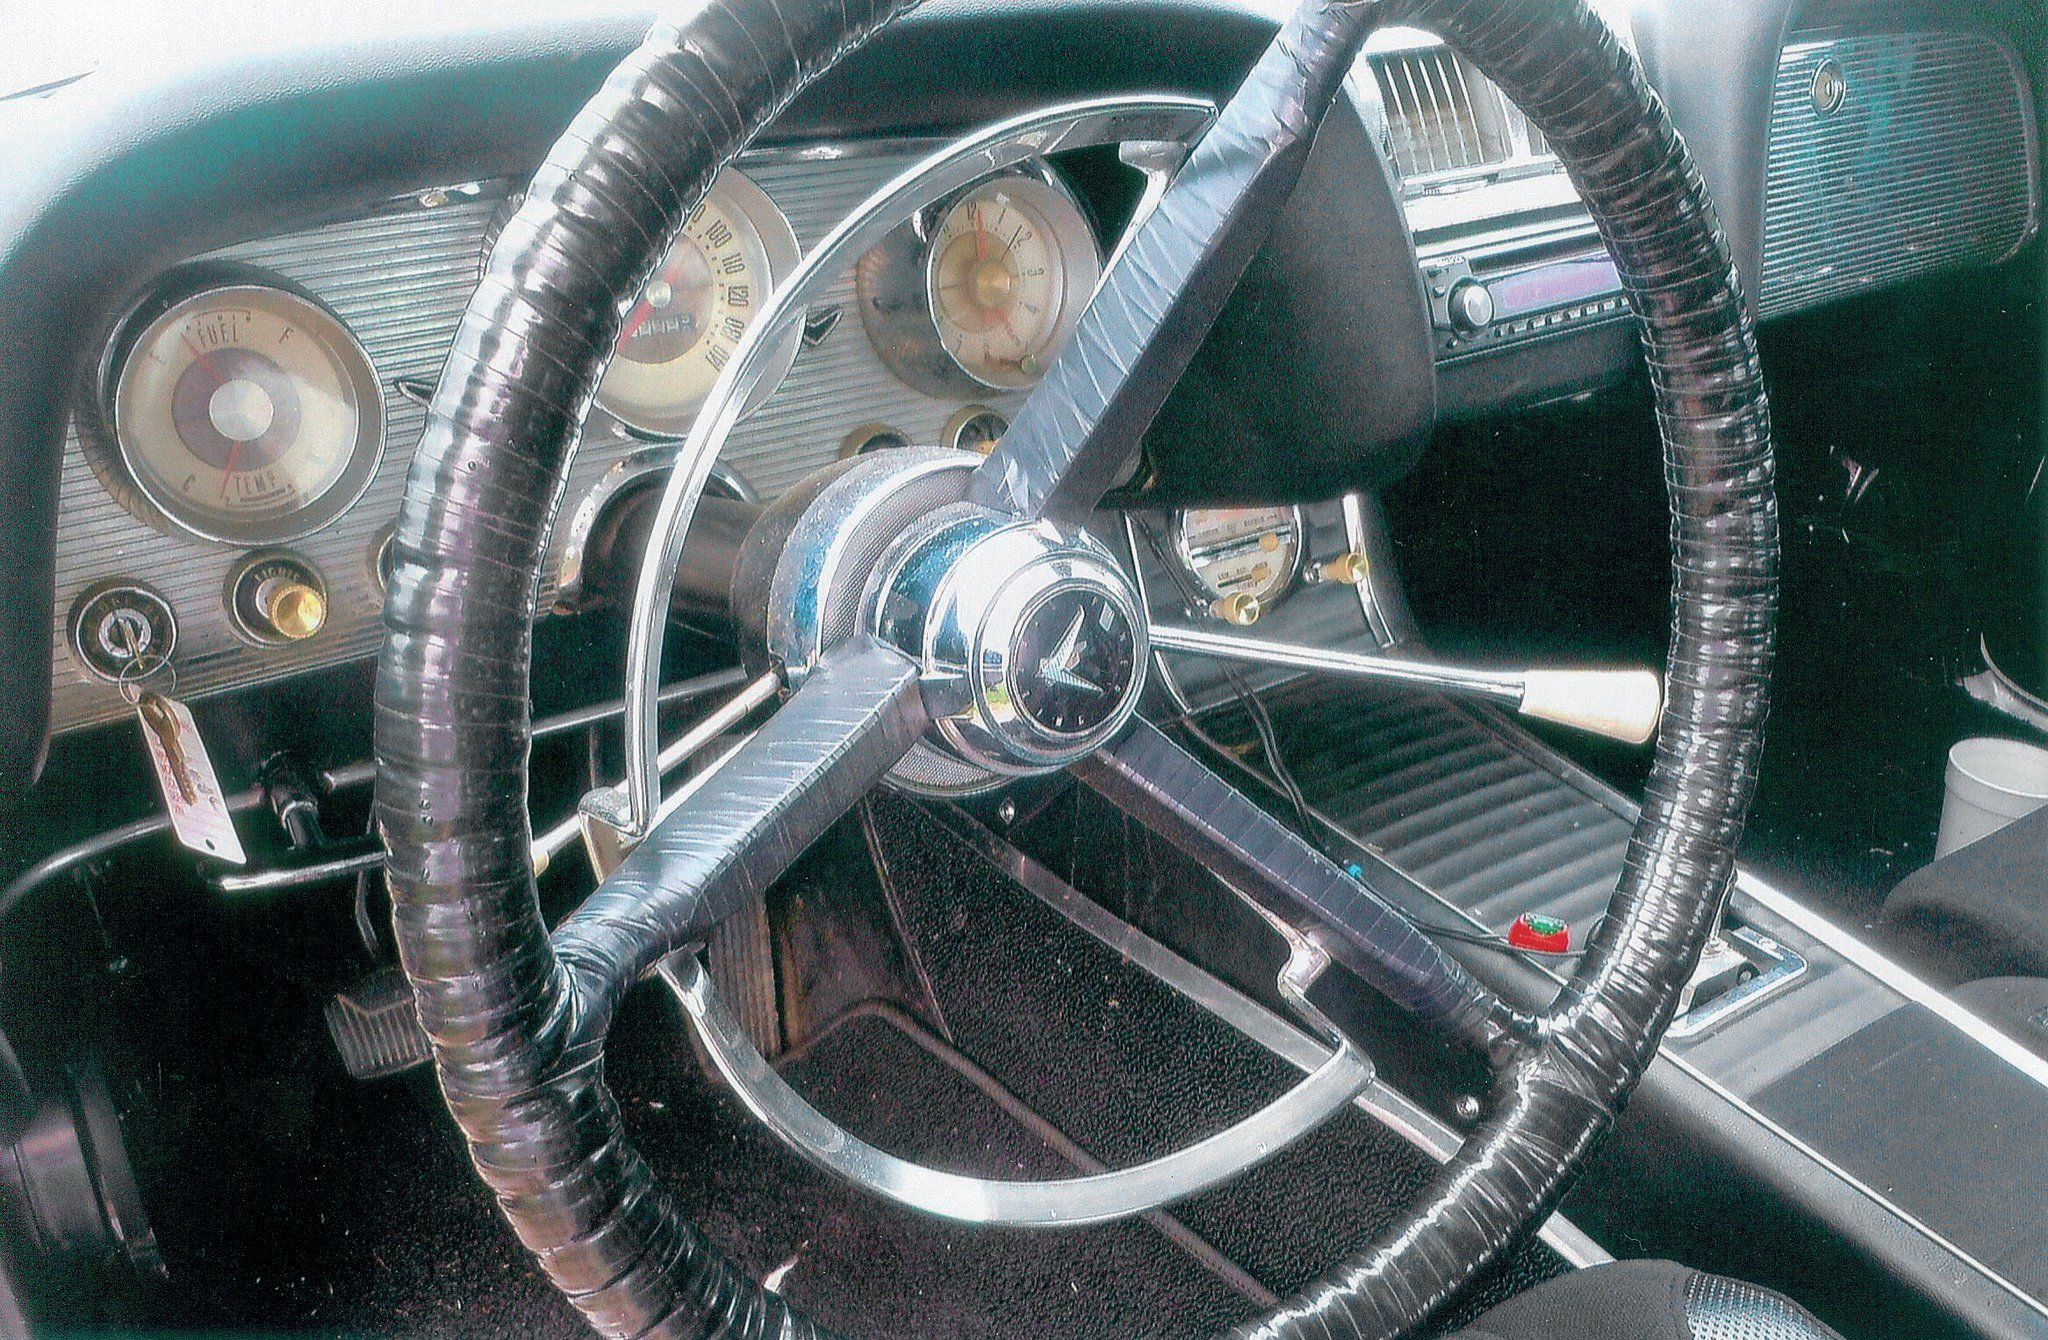 Like the outside, the inside is very much on the stock side. Notice the shifter on the steering column. The interior was completely gutted and a sturdy rollcage installed. The main bars were 13/4 inch in diameter.